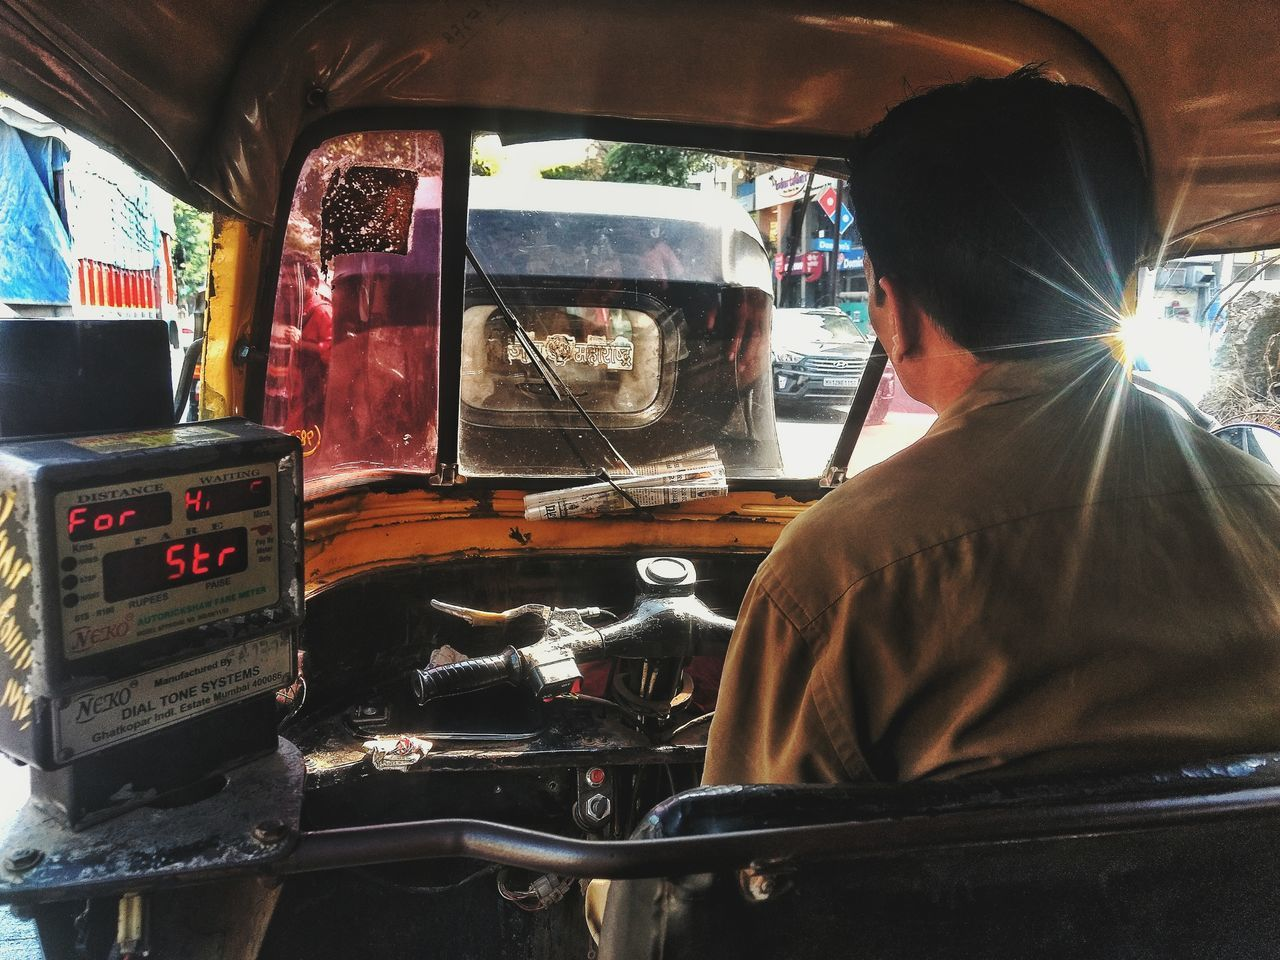 car, transportation, land vehicle, mode of transport, vehicle interior, car interior, driving, real people, windshield, one person, men, rear view, day, sunlight, occupation, sitting, working, outdoors, manual worker, young adult, people